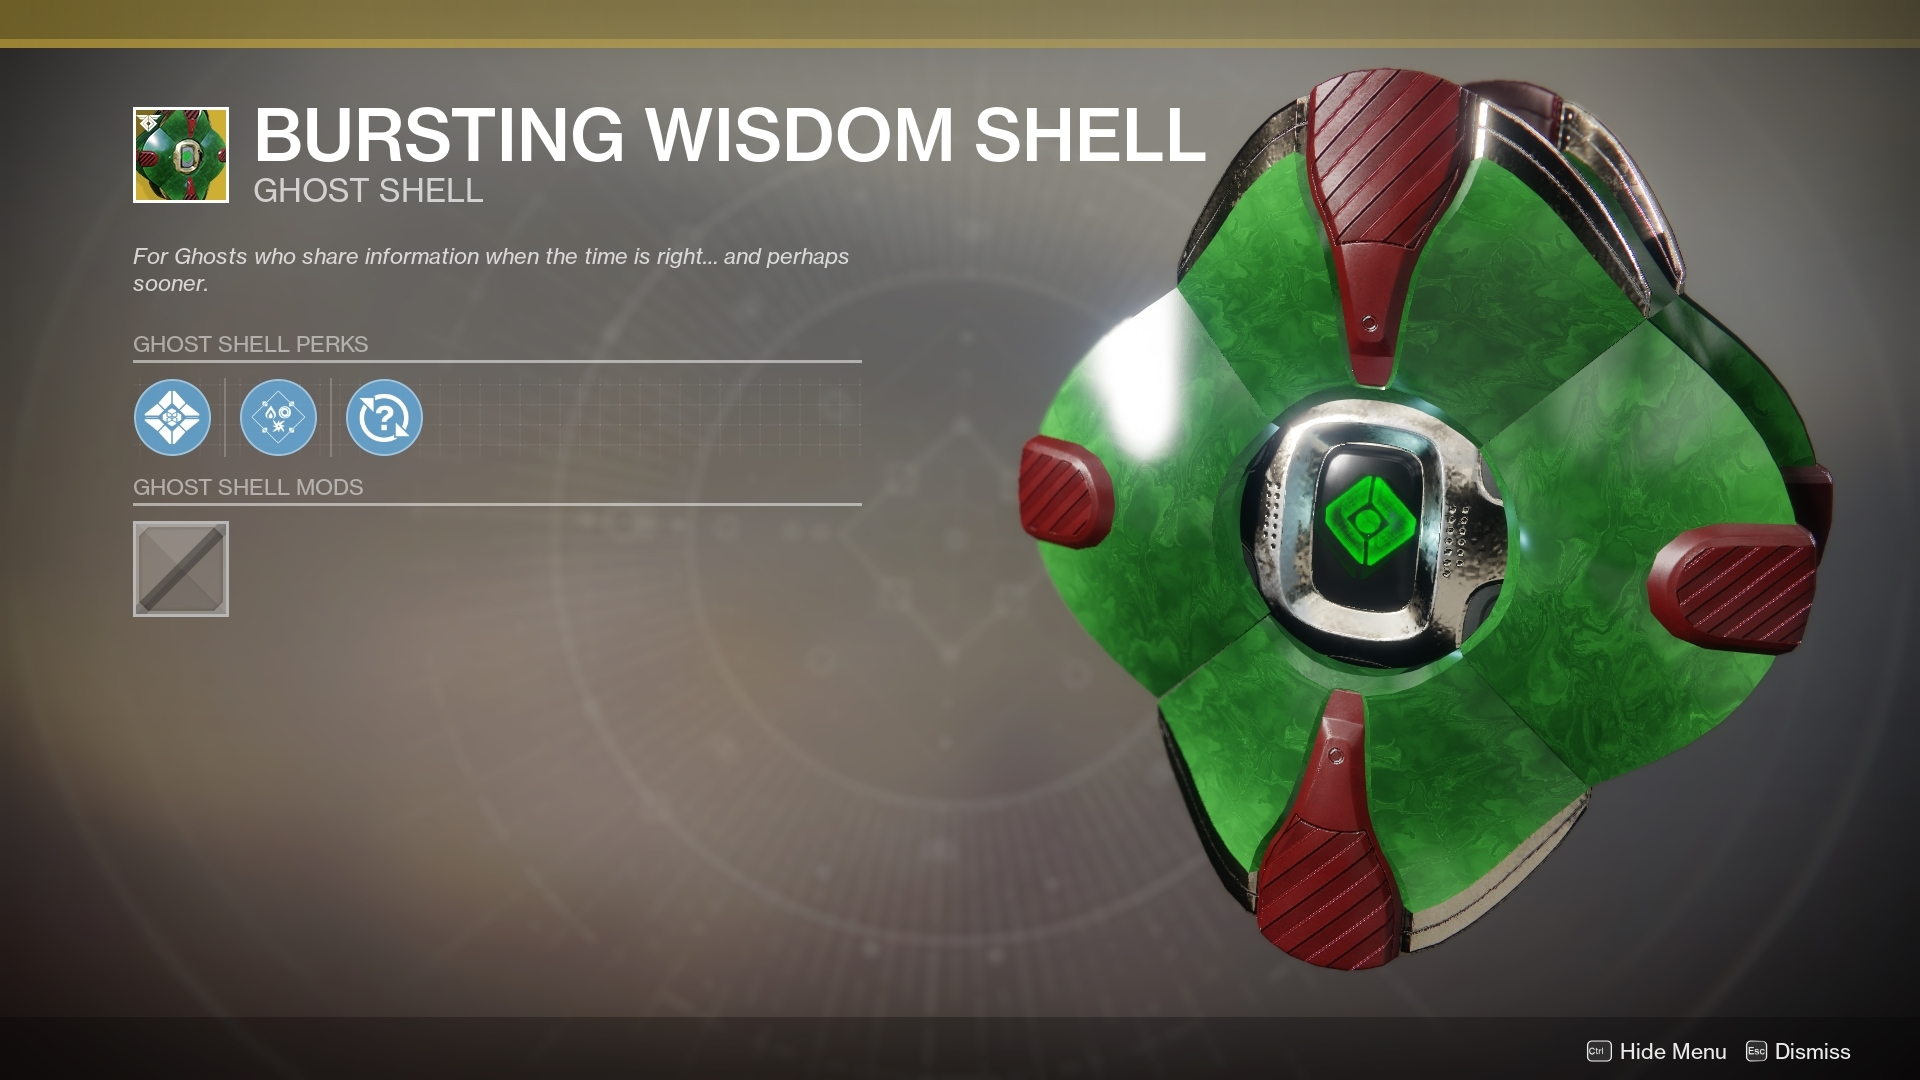 Destiny 2 has a ton of new Exotic cosmetic items to earn